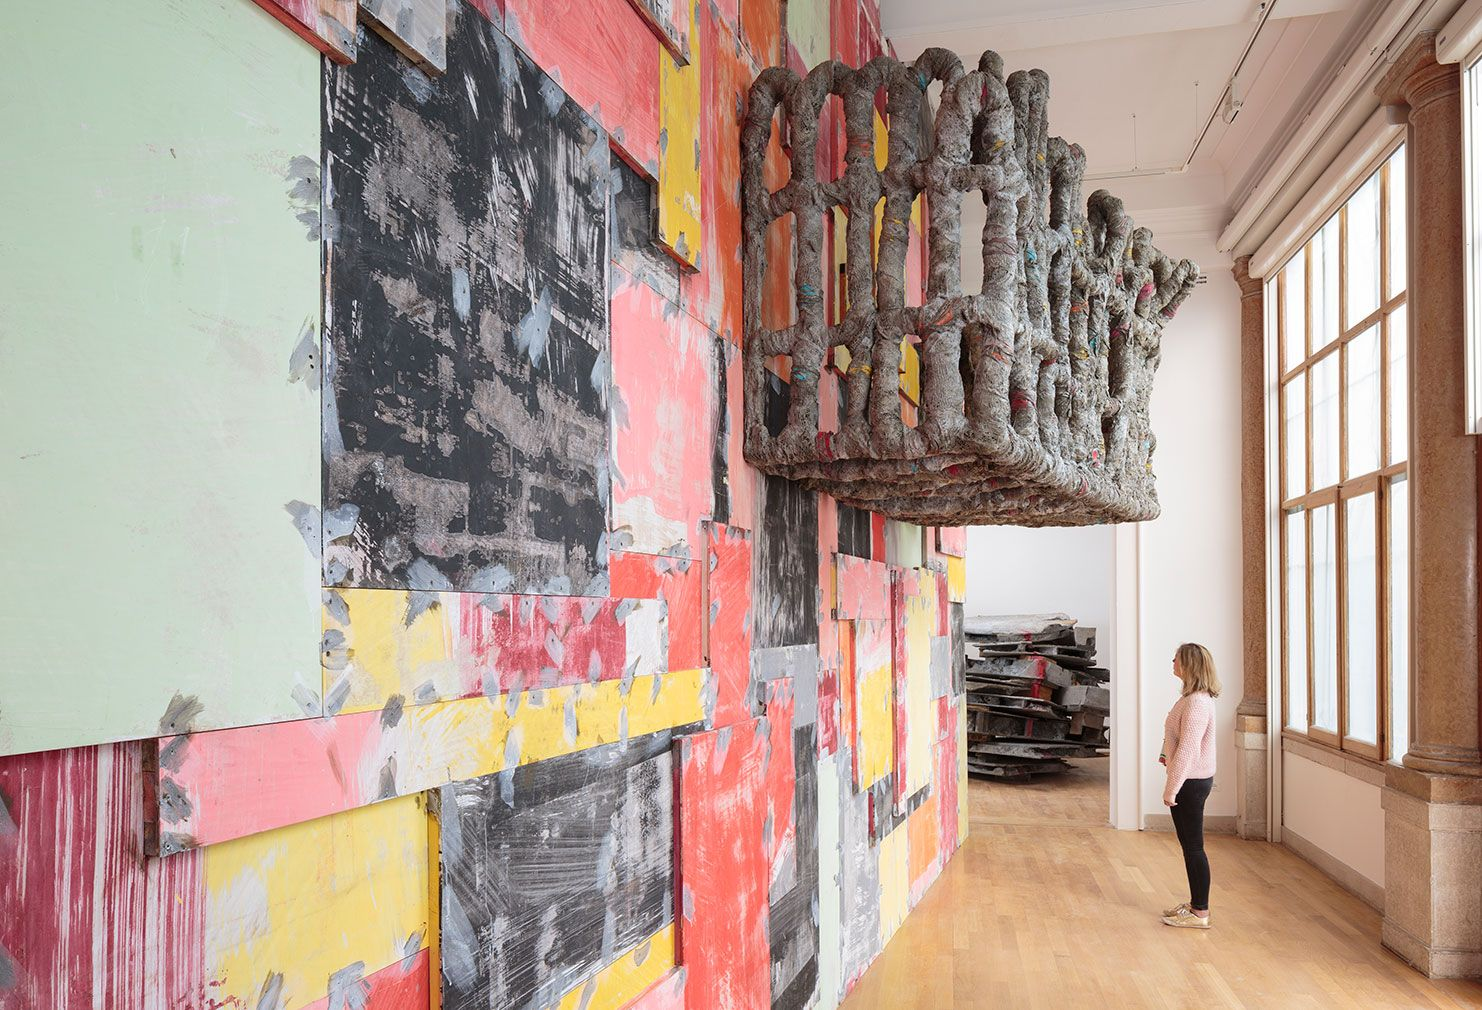 Phyllida Barlow's Folly installation in British Pavilion at the Venice Biennale